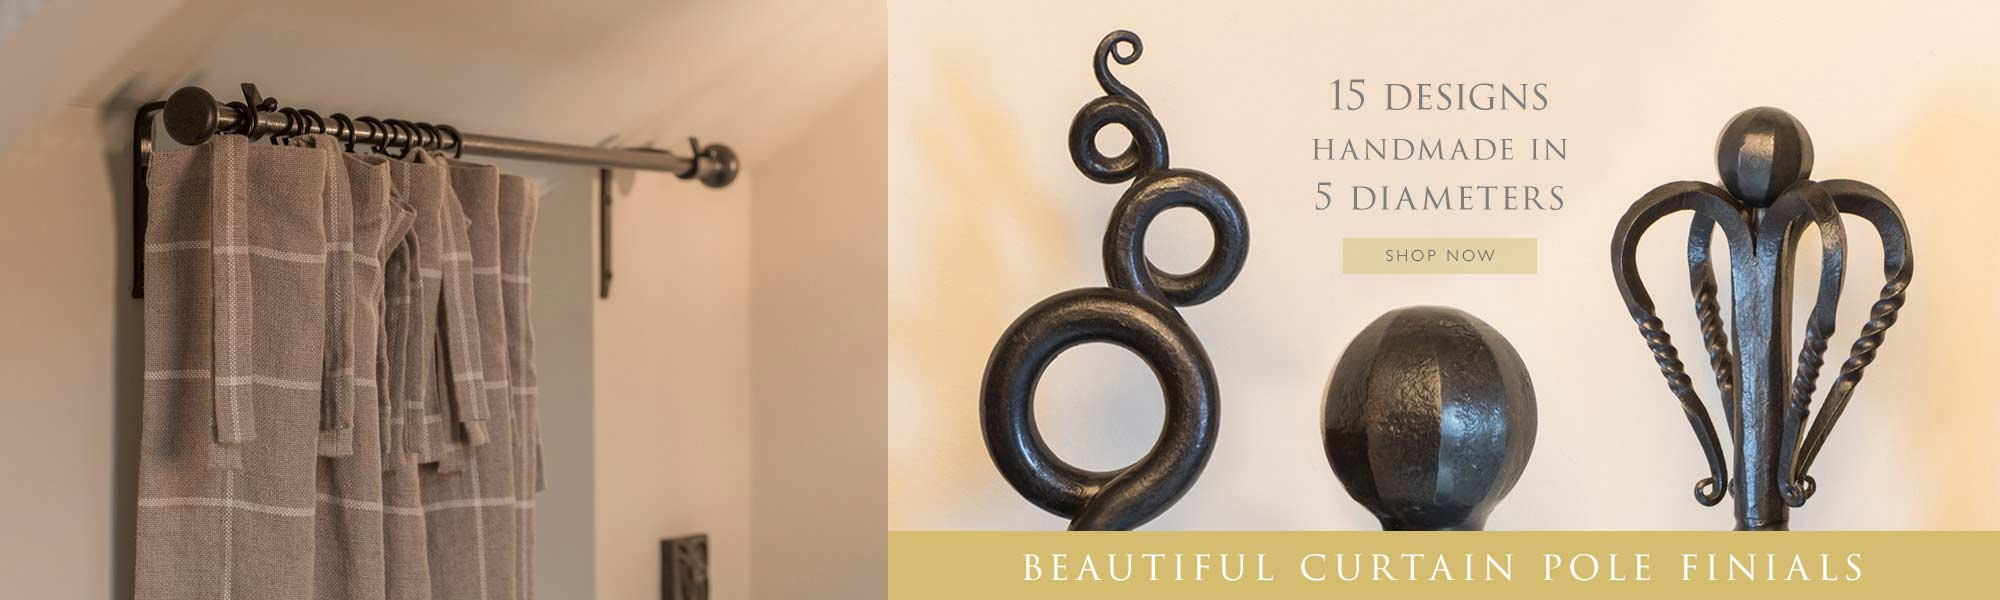 Wrought Iron Curtain Pole Finials from Nigel Tyas Ironwork